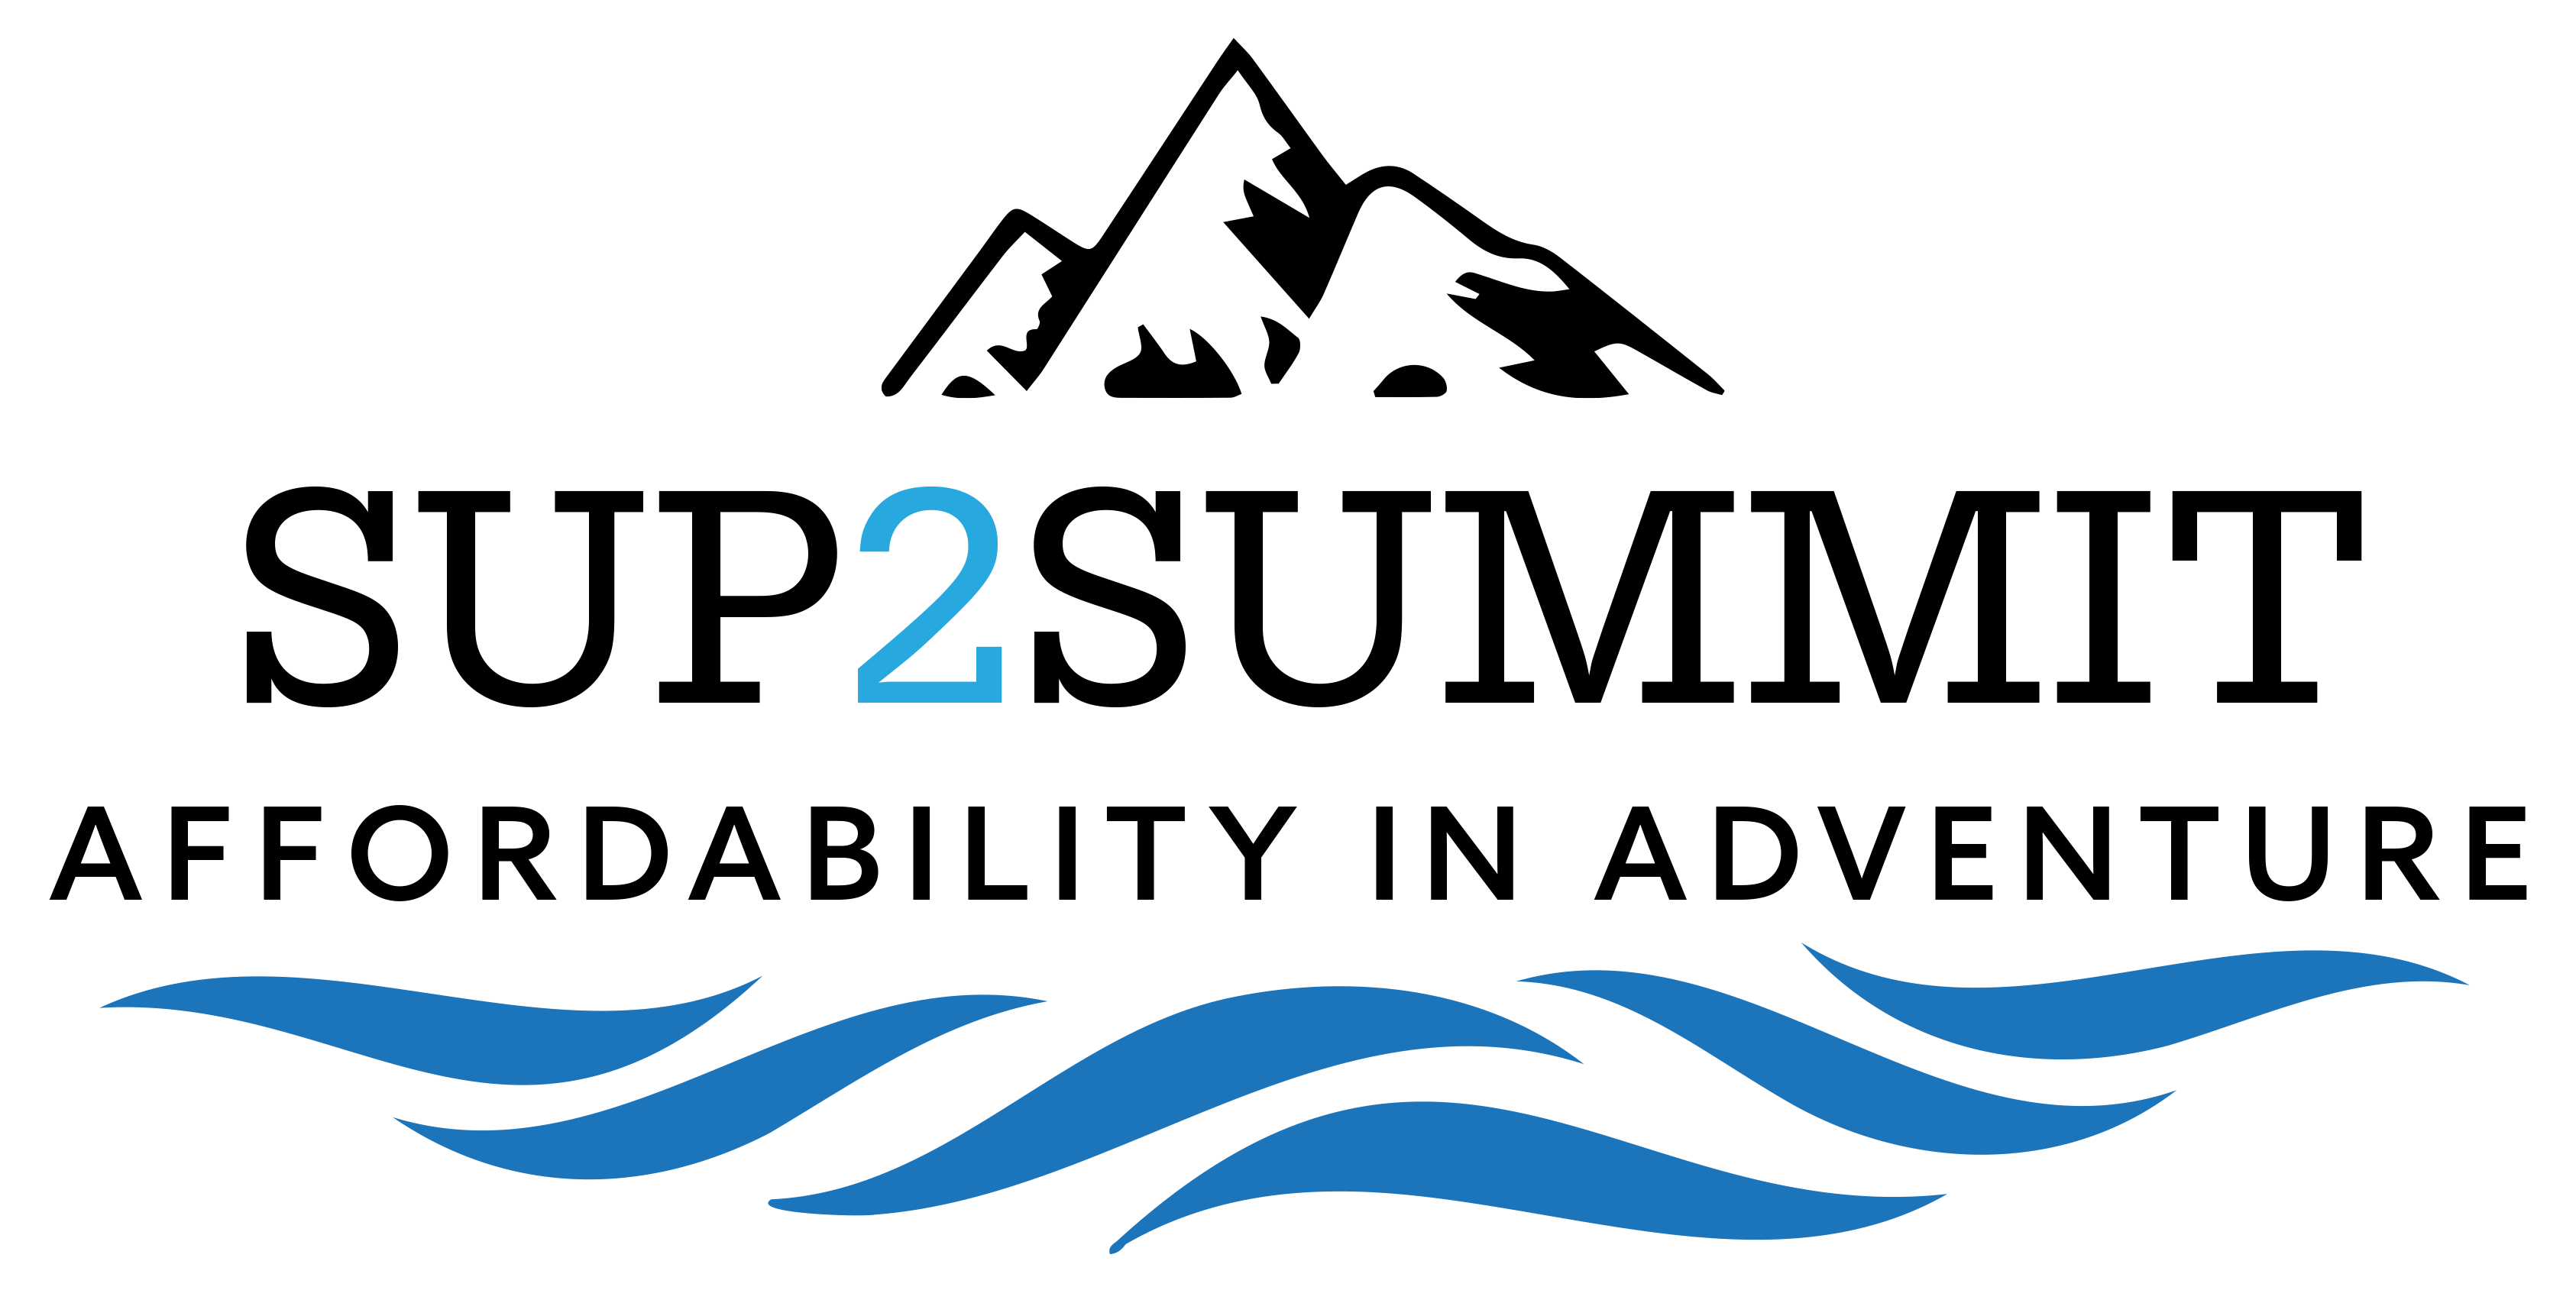 http://sup2summit.com/wp-content/uploads/2021/02/cropped-S2S_logo.png